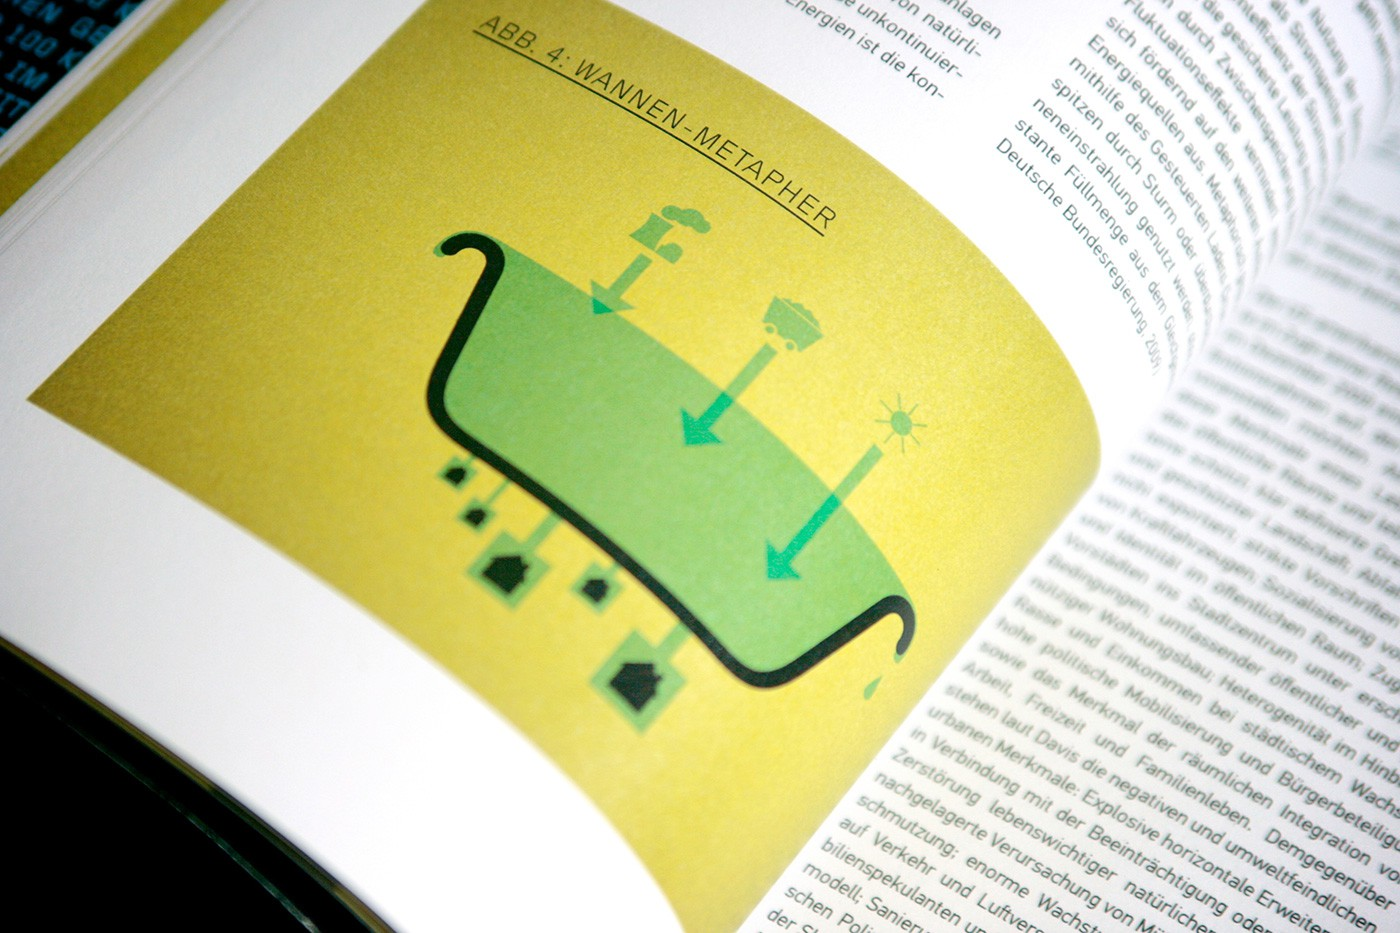 Wildwechsel mobility book design by upstruct